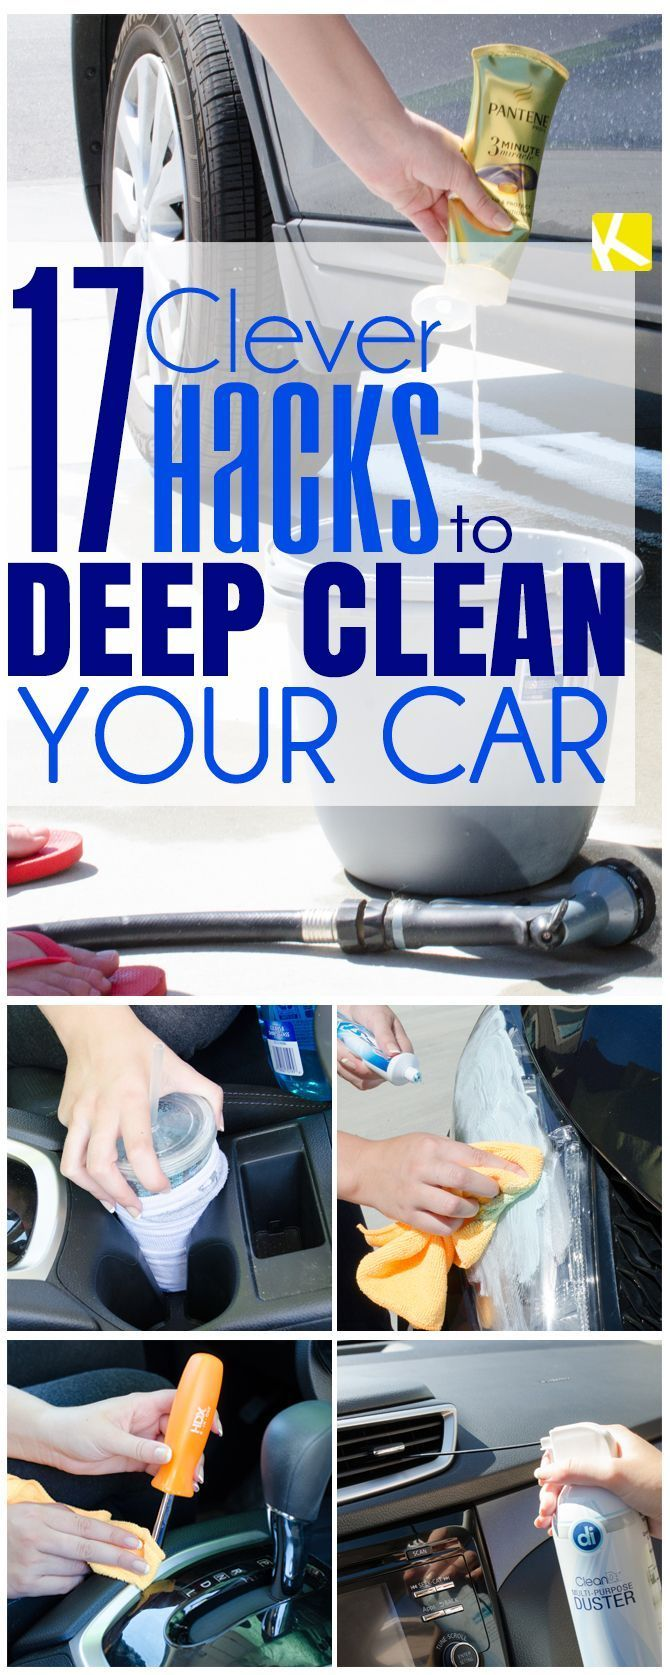 16 seriously clever tricks to deep clean your car clever cars and car cleaning. Black Bedroom Furniture Sets. Home Design Ideas